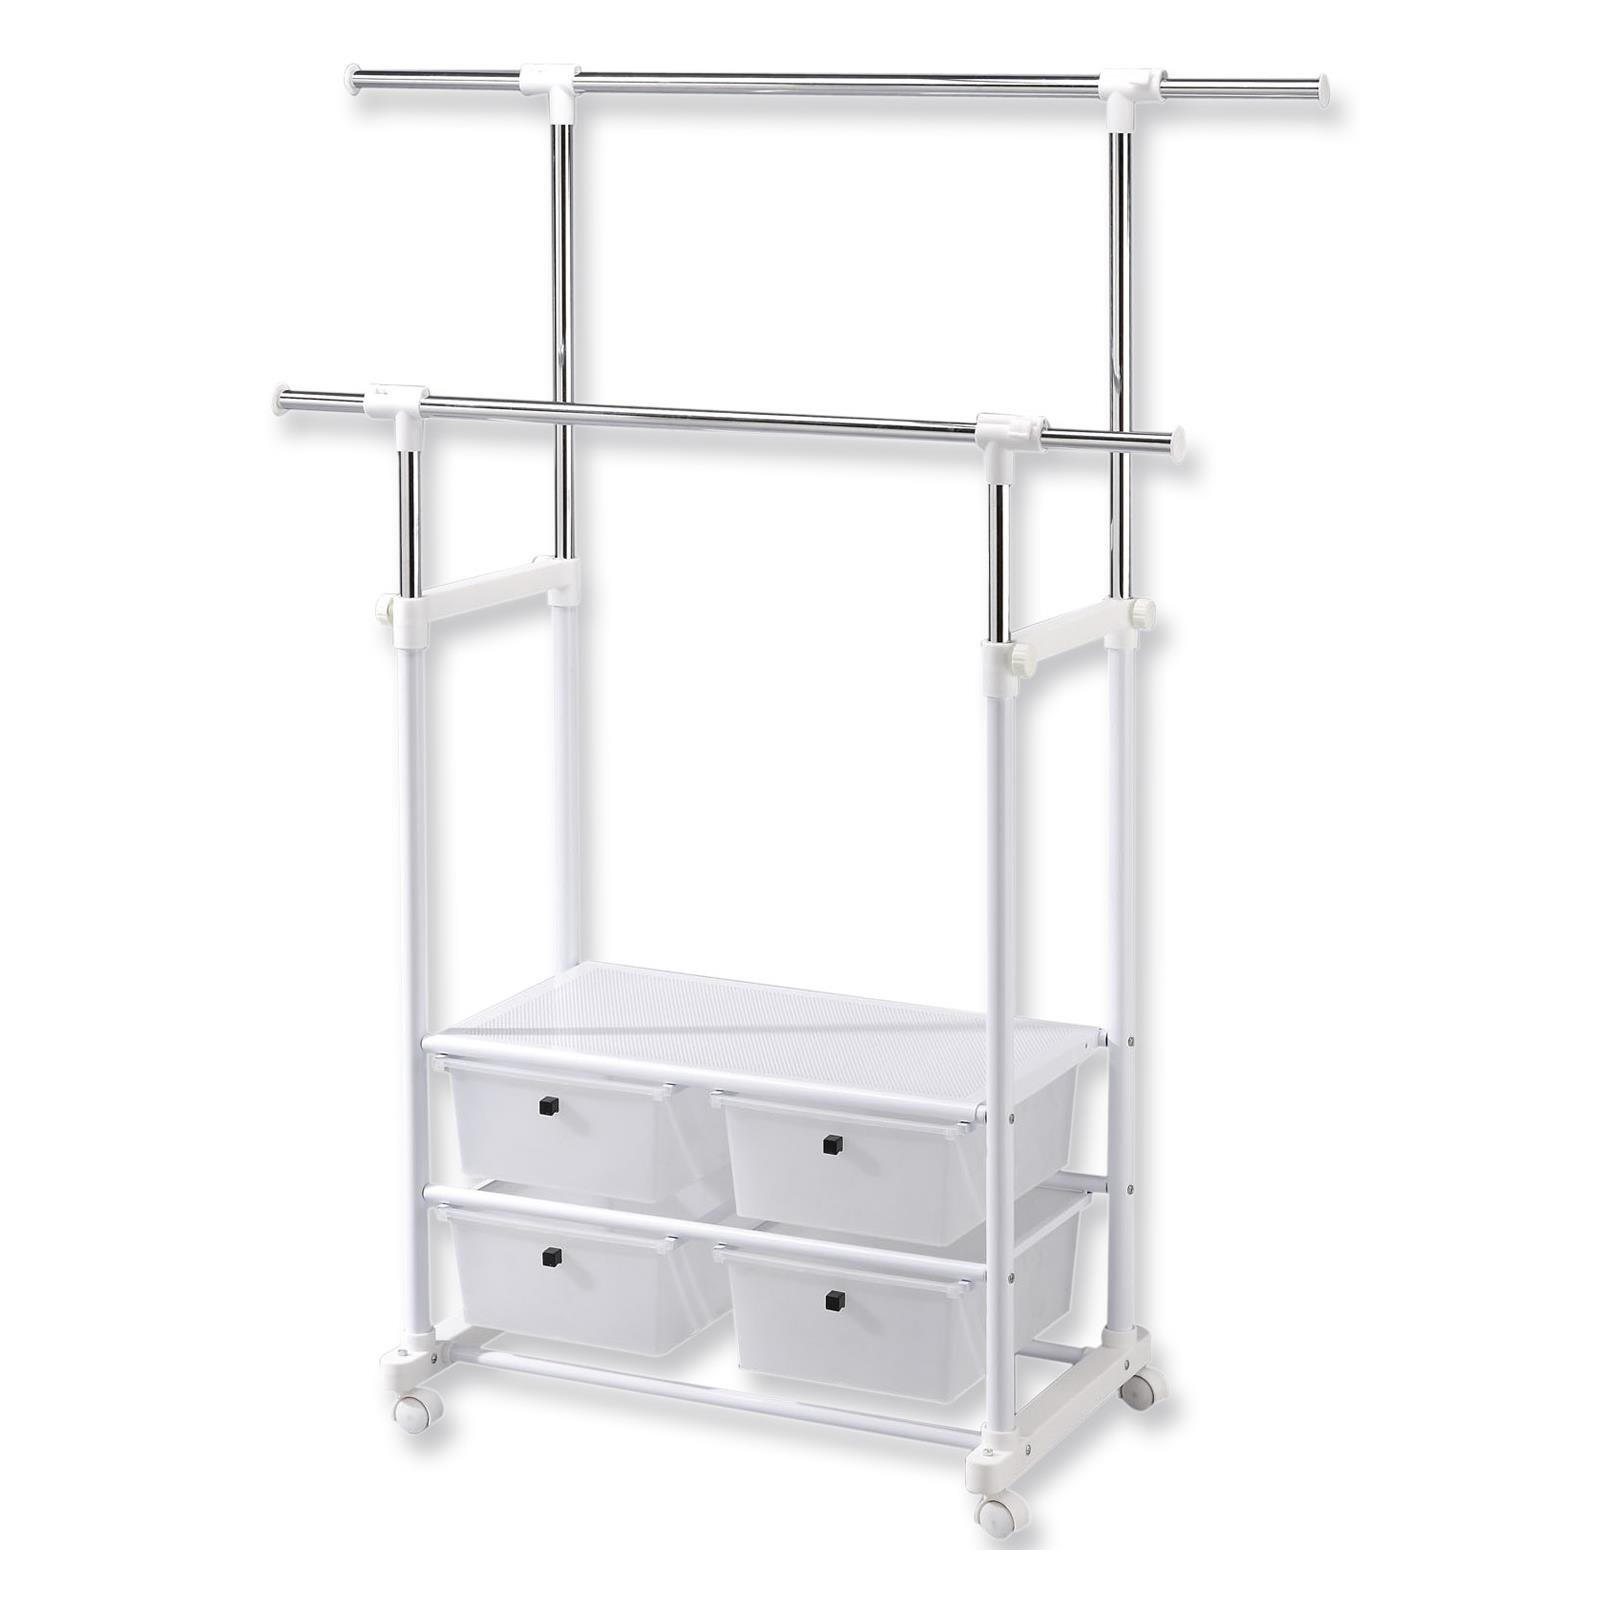 Cream Clothes Rail | Wayfair.co (View 5 of 20)